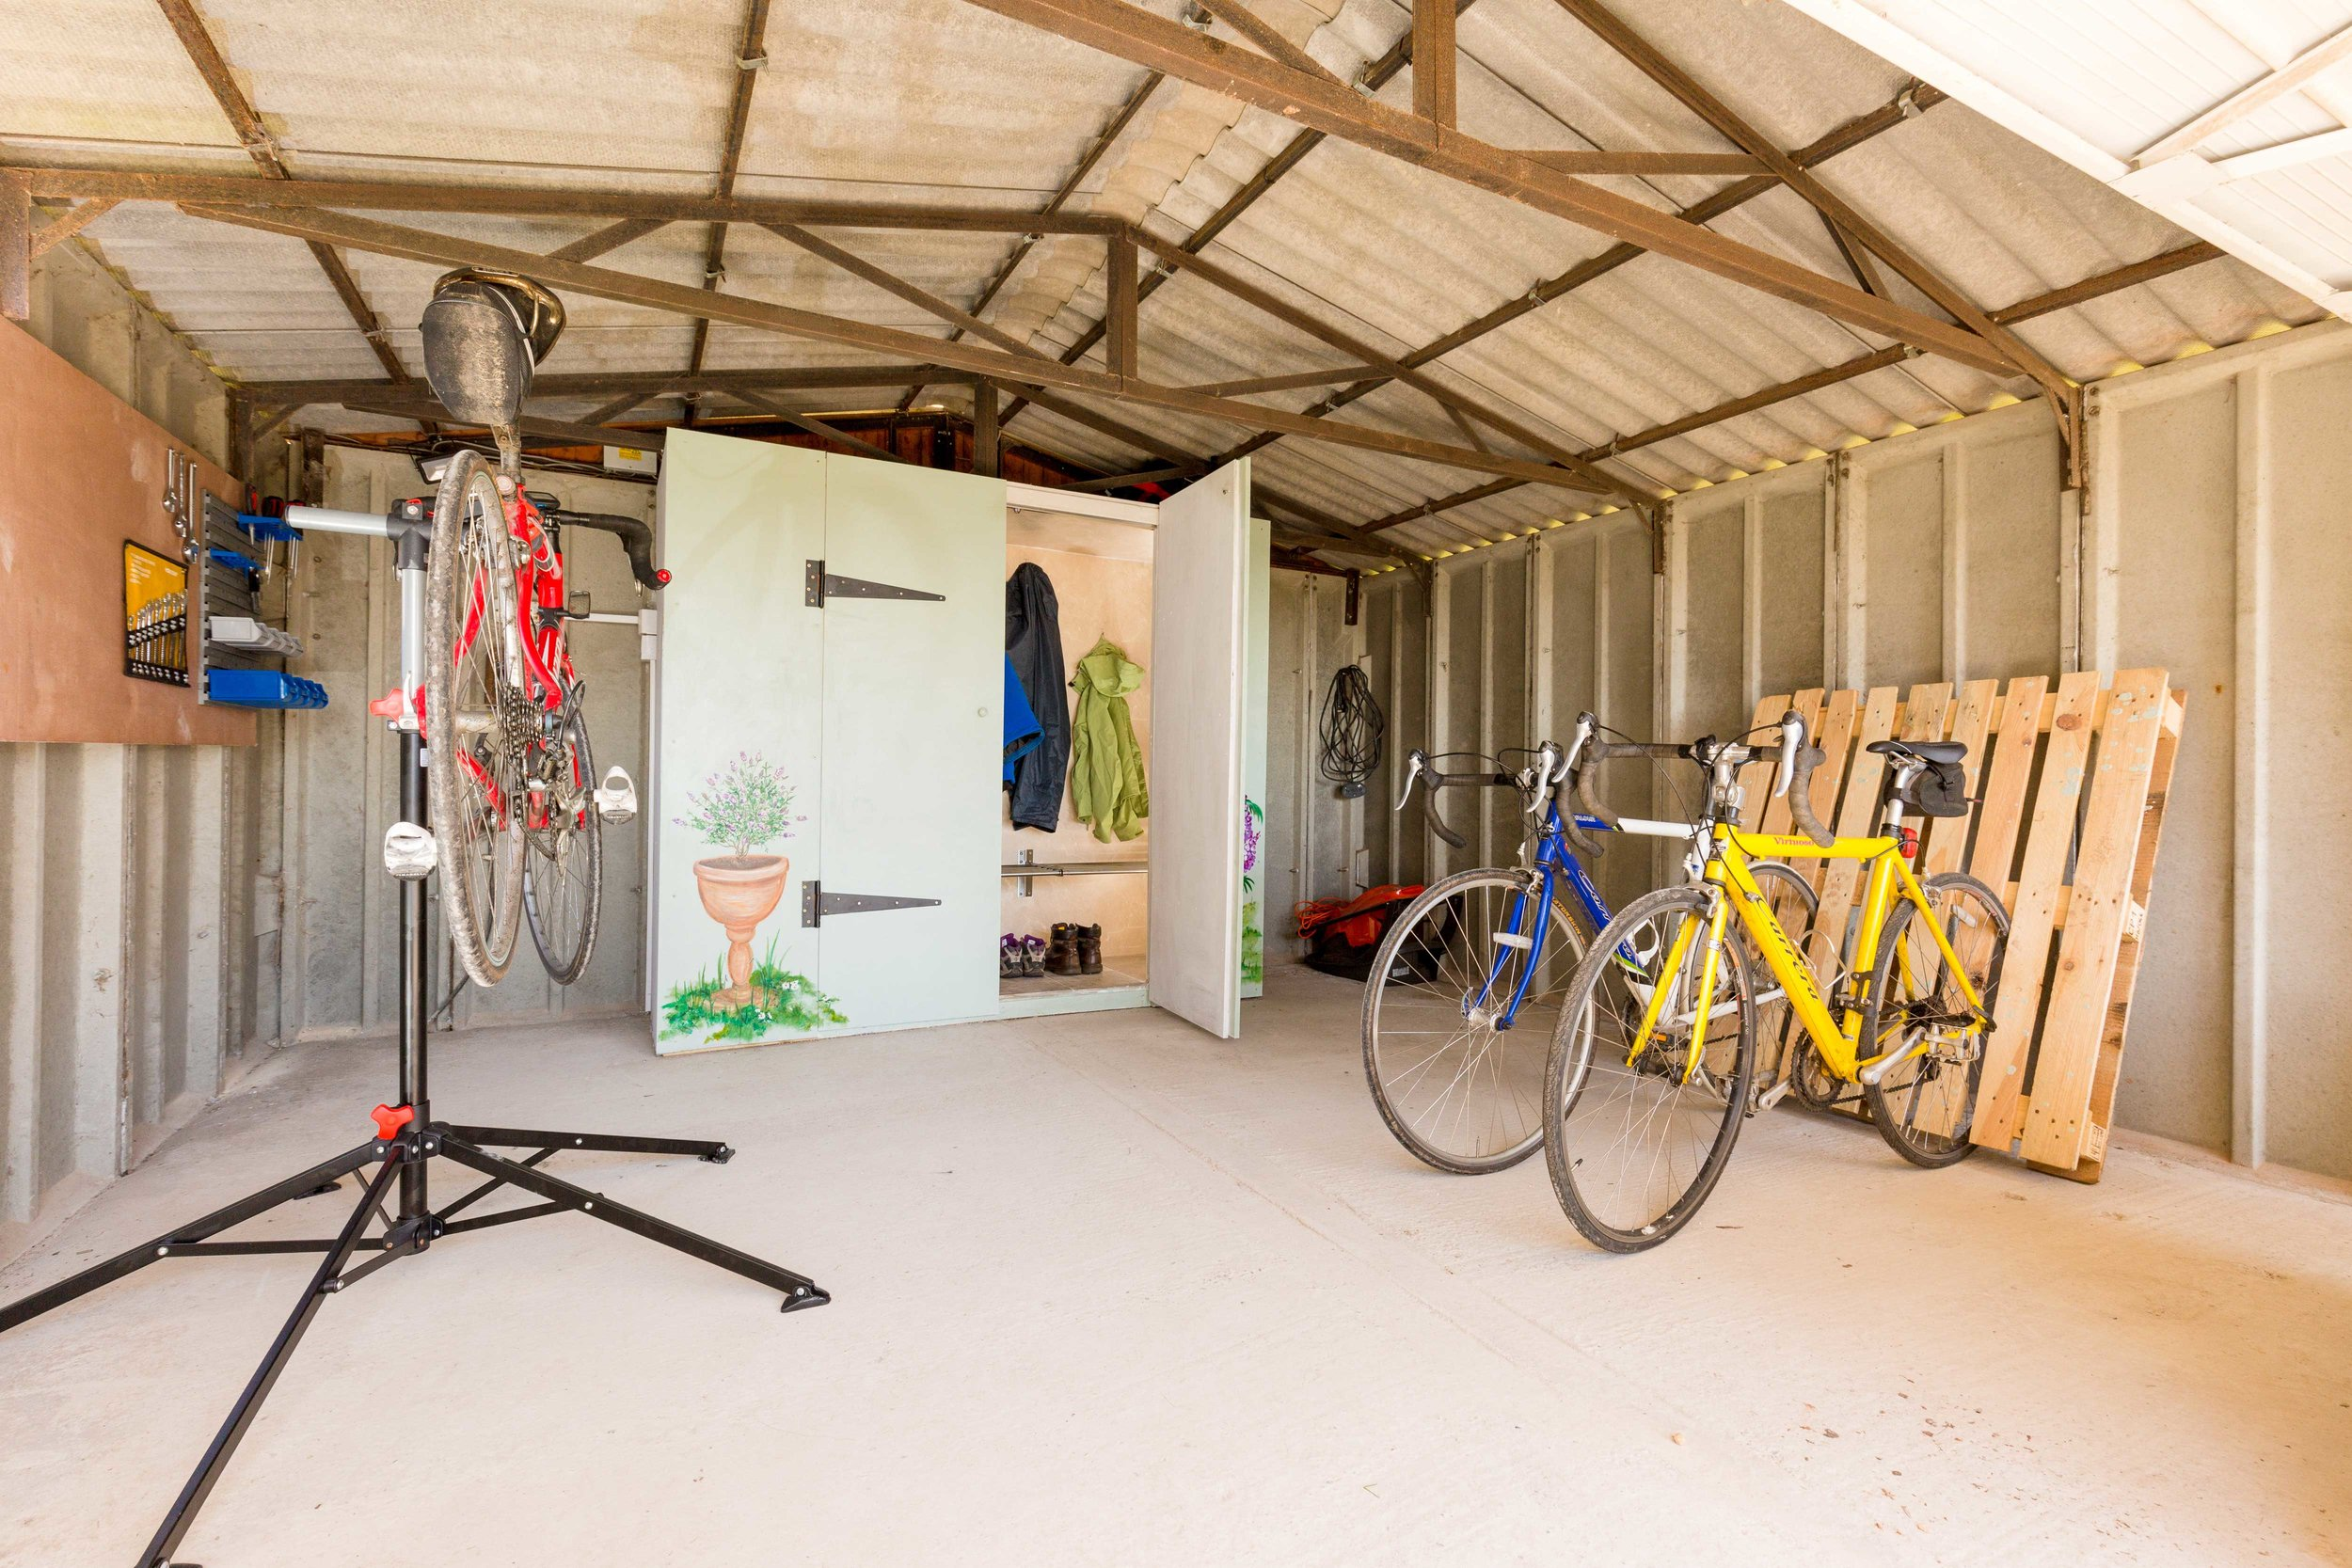 The shed includes a heated drying cupboard for wet weather gear, together with a bike workstation, tools and bike racks...